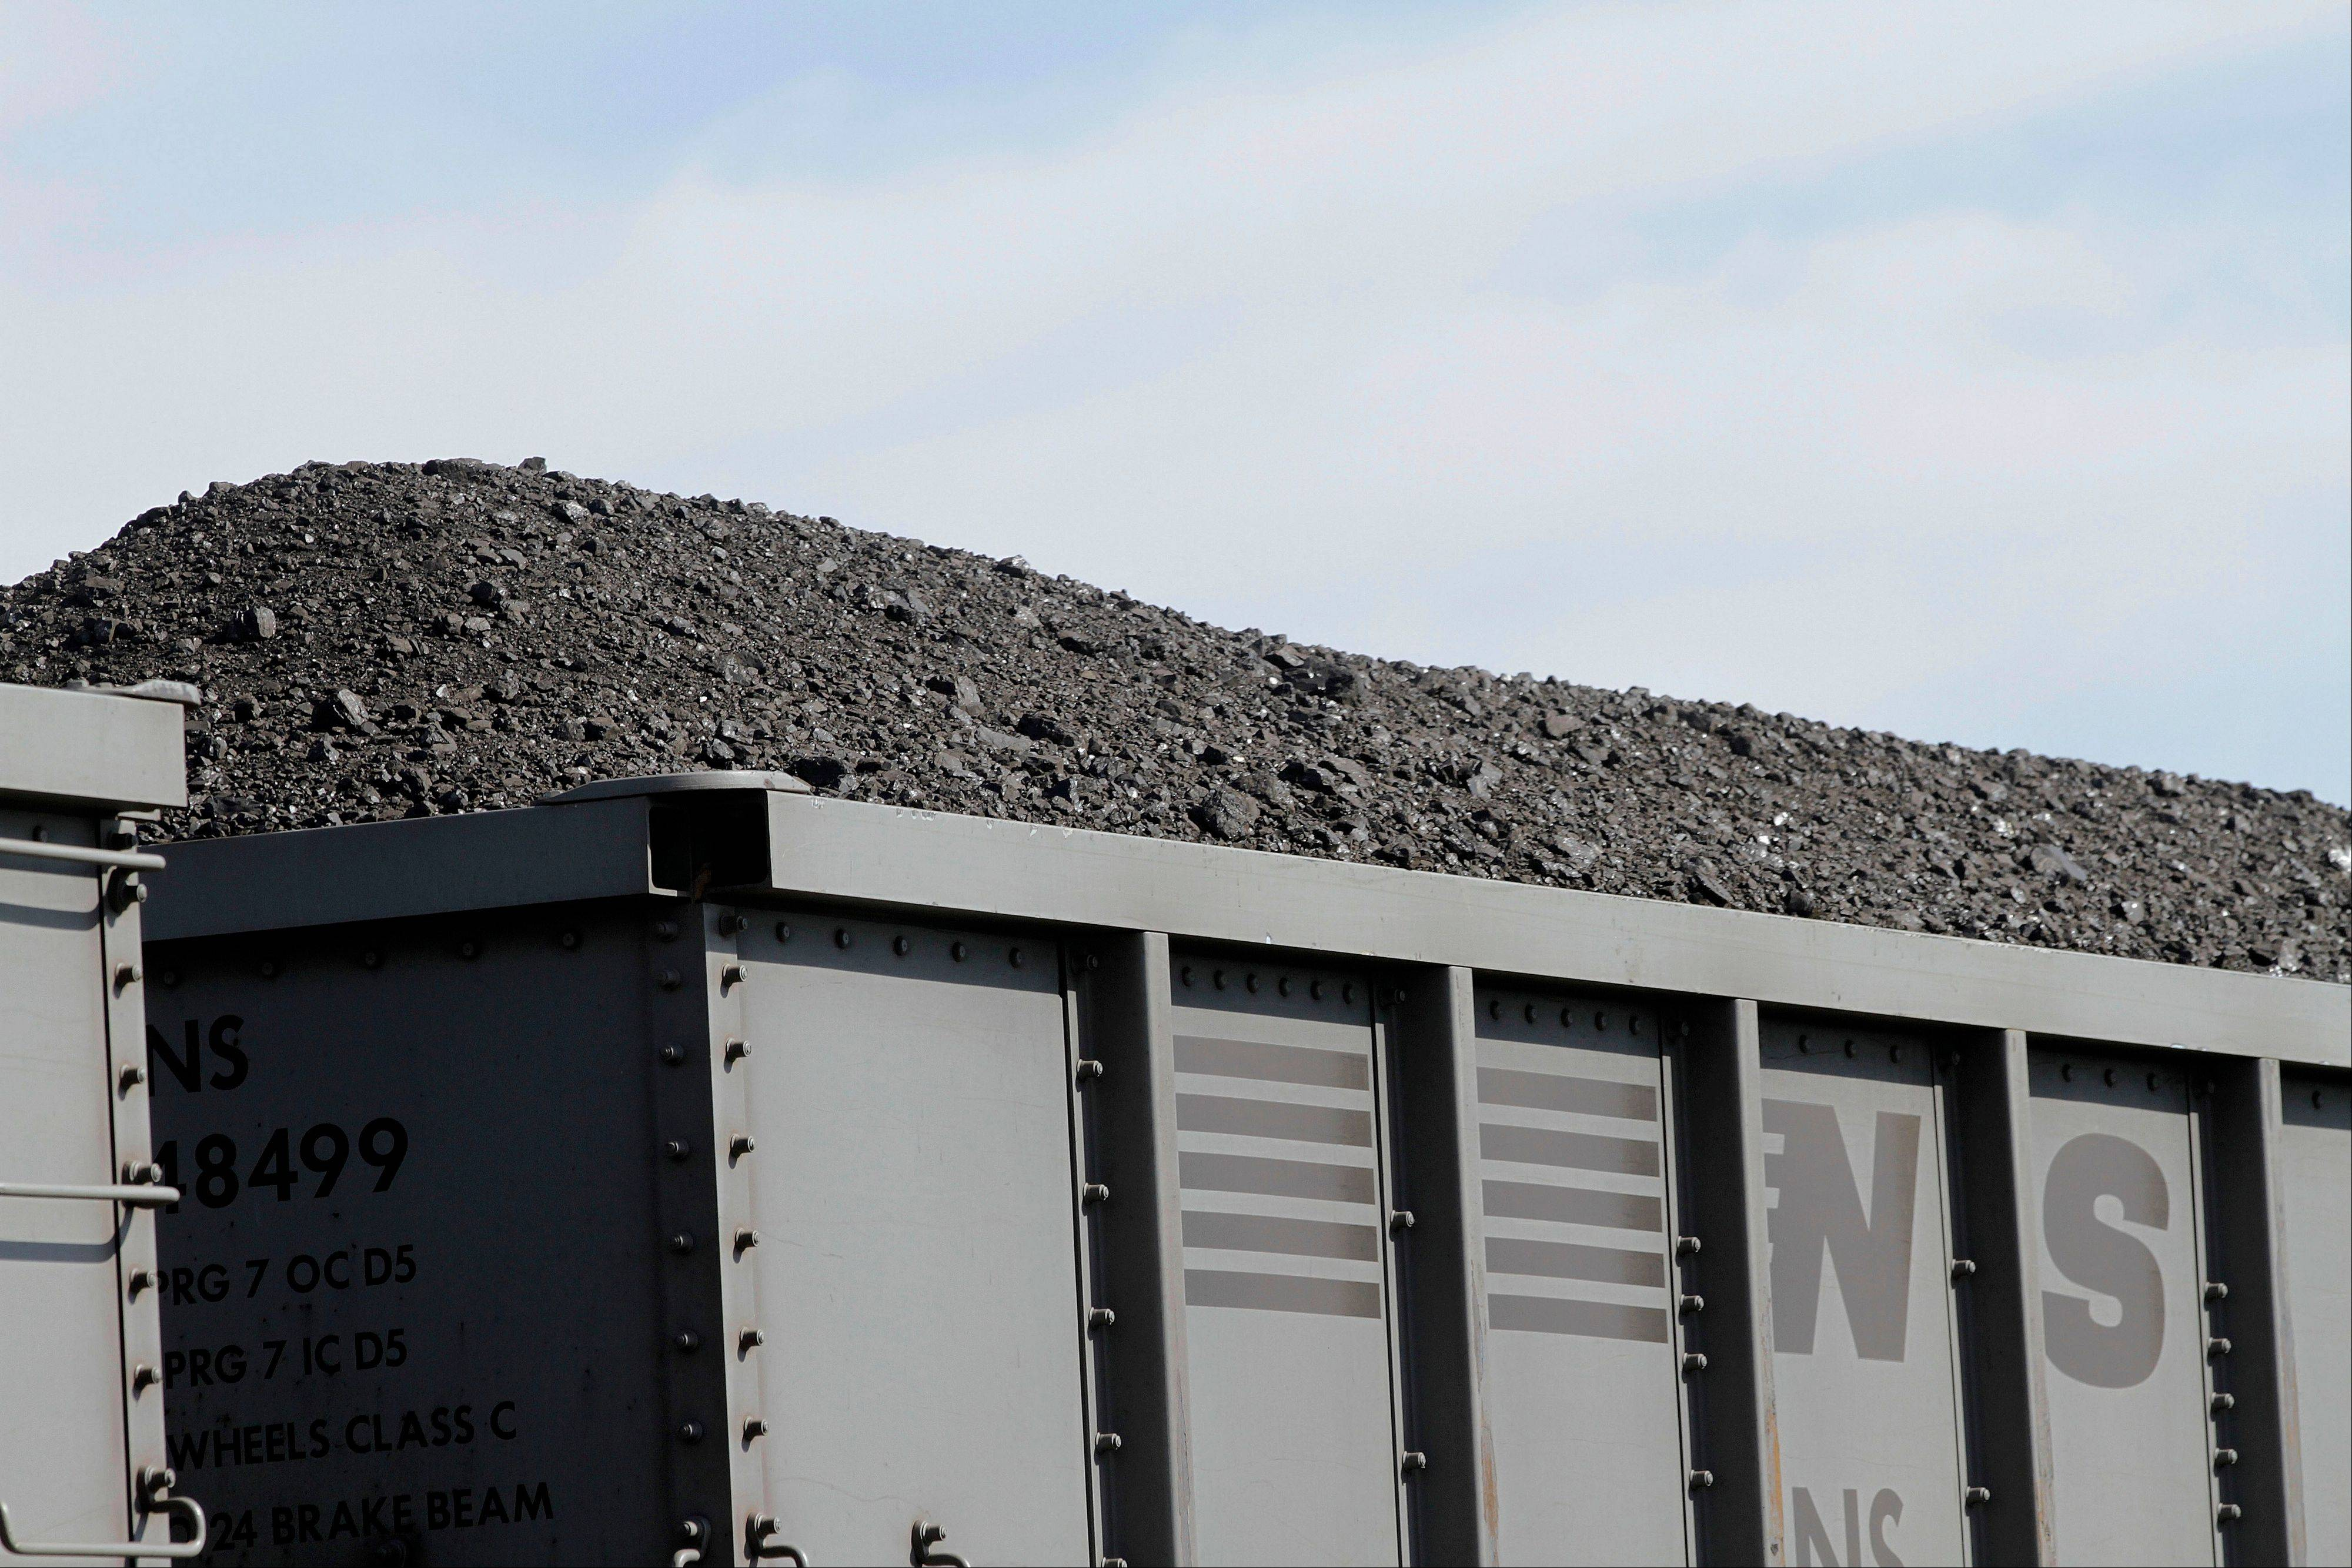 A Norfolk Southern Railroad train pulls transport cars full of coal near Goodfield, Ill. The United States cut its energy-related carbon dioxide pollution by 3.8 percent in 2012, the second biggest drop since 1990, the Department of Energy said Monday.